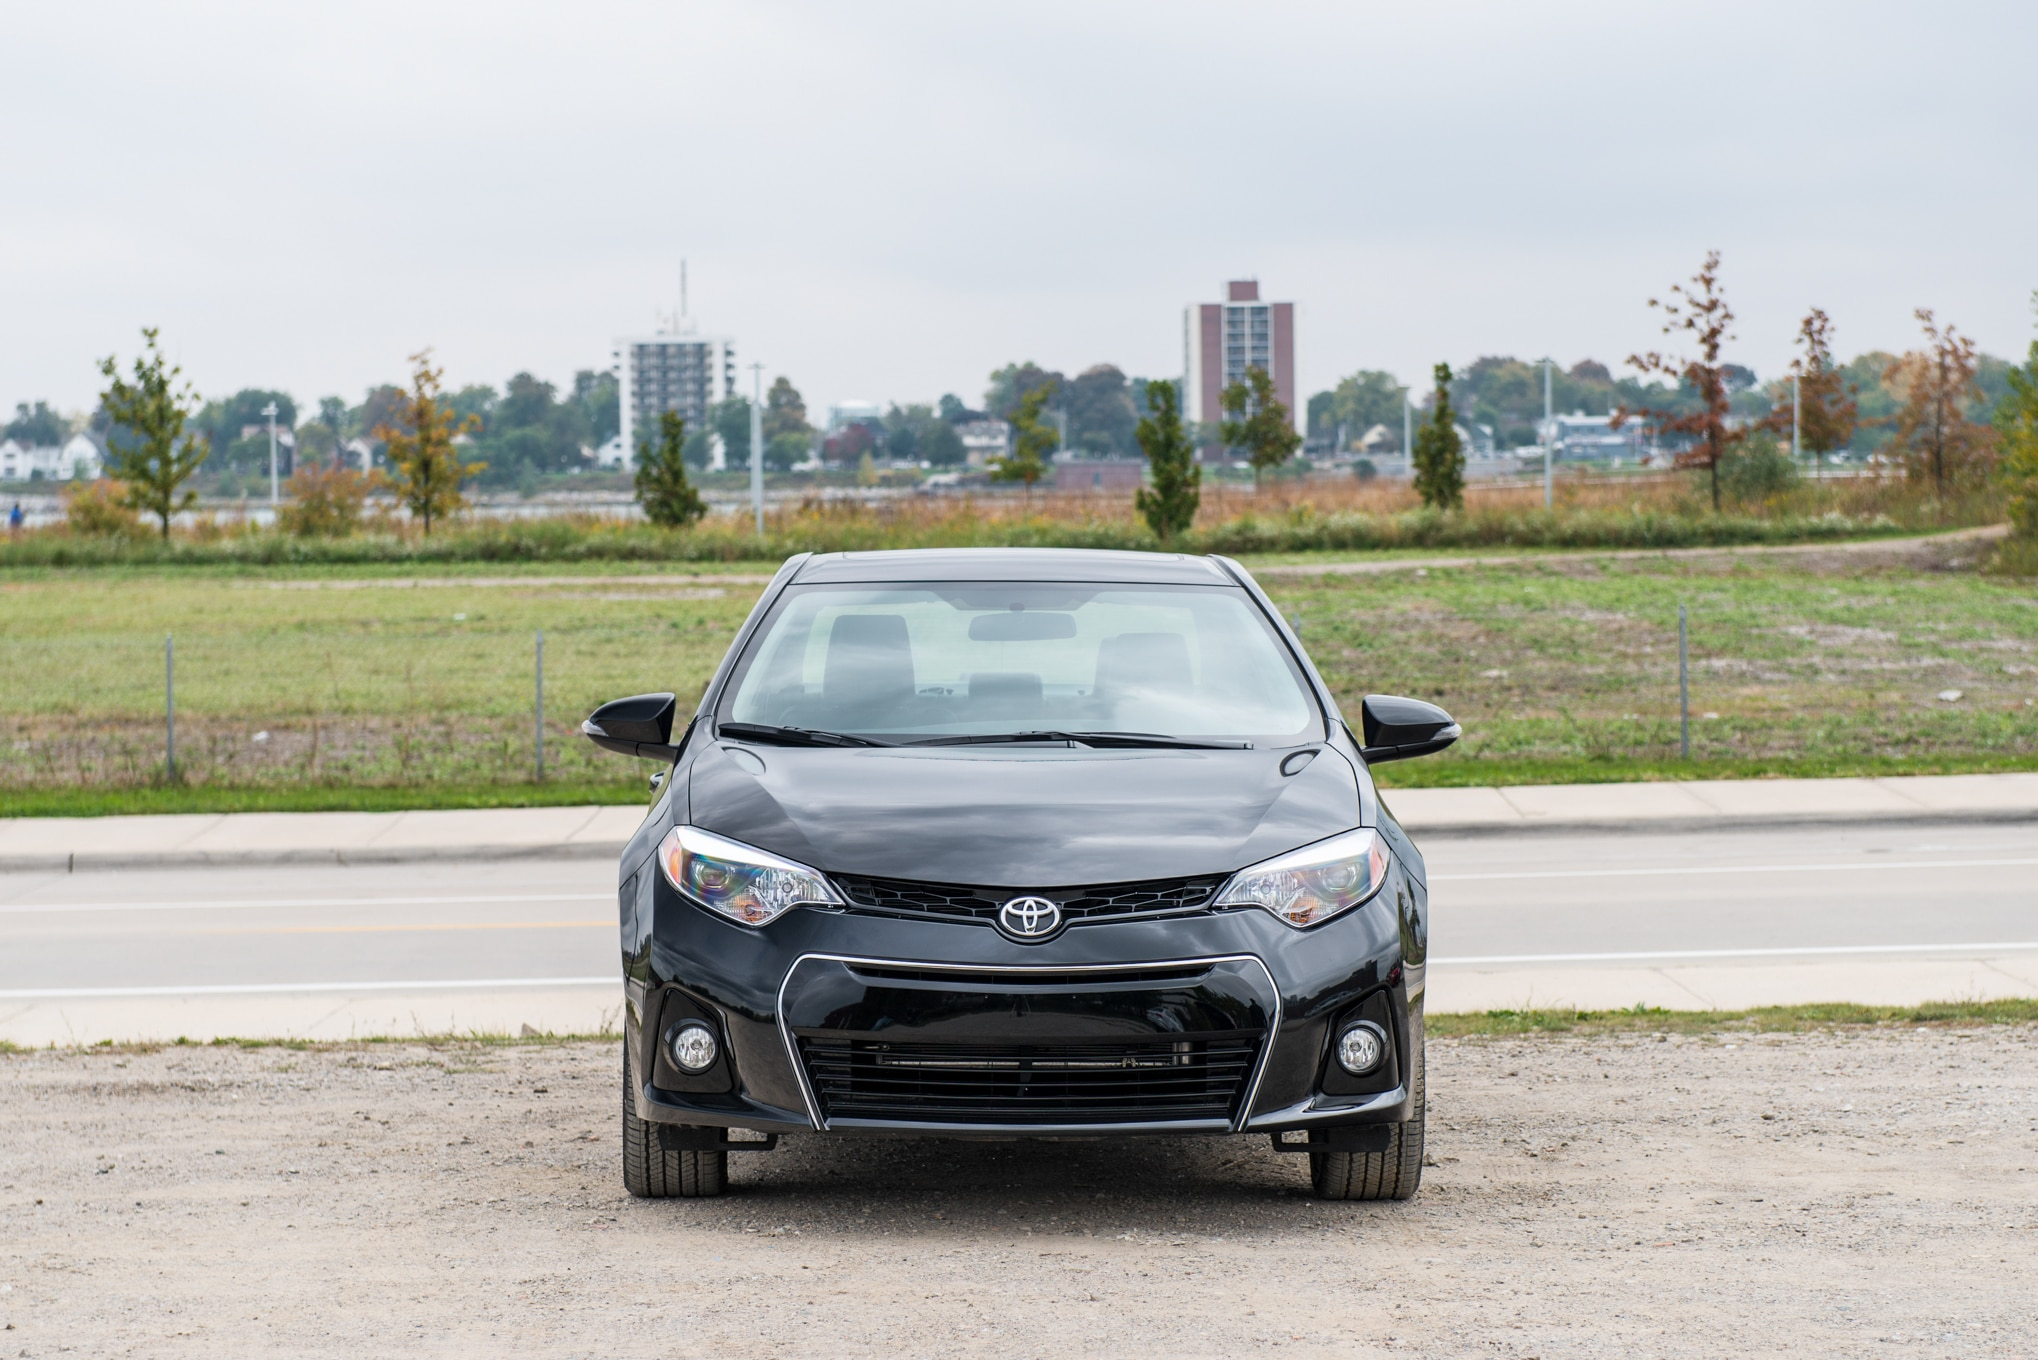 2014 Toyota Corolla S Plus Front View